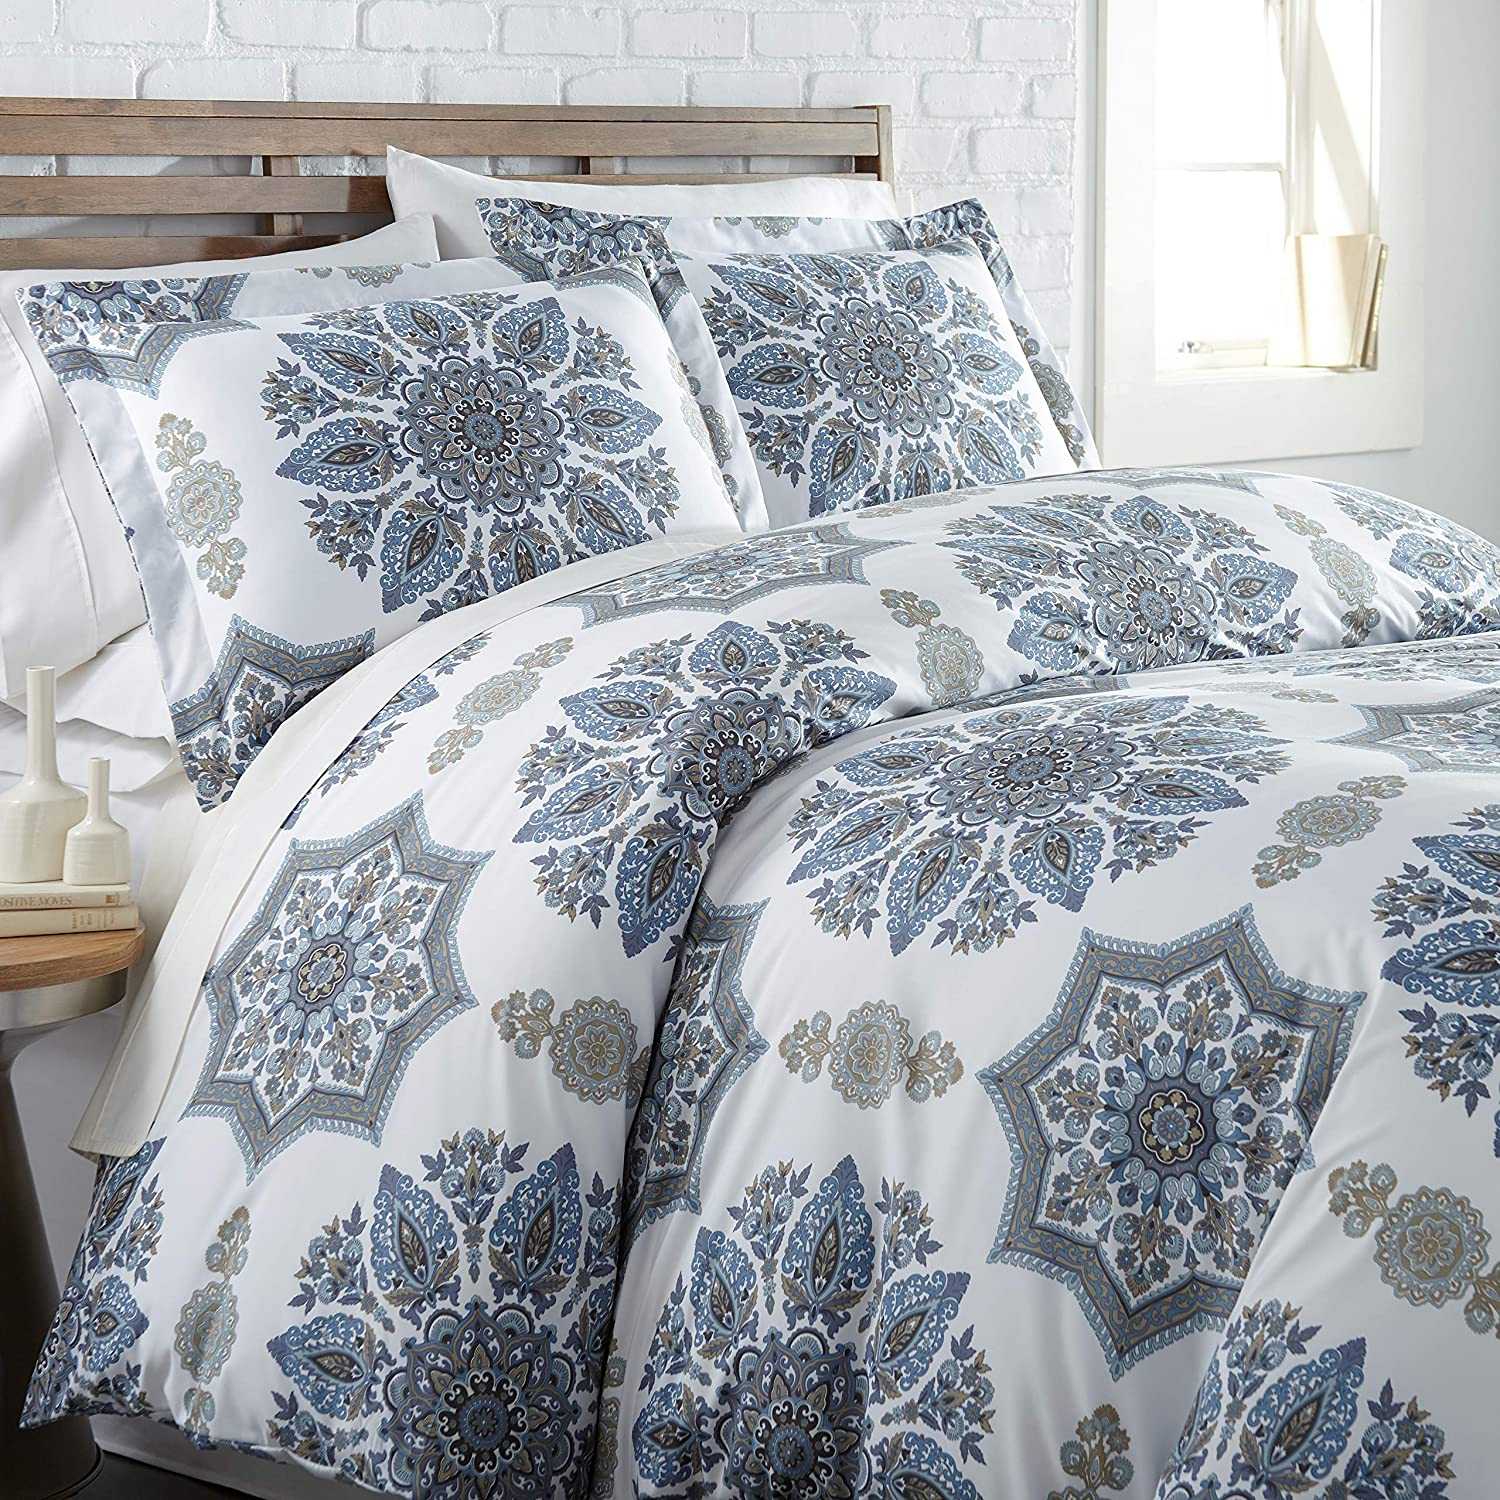 Southshore Fine Living, Inc. The Infinity Collection Comforter Sets, 3 Piece Set, King/California King, Blue